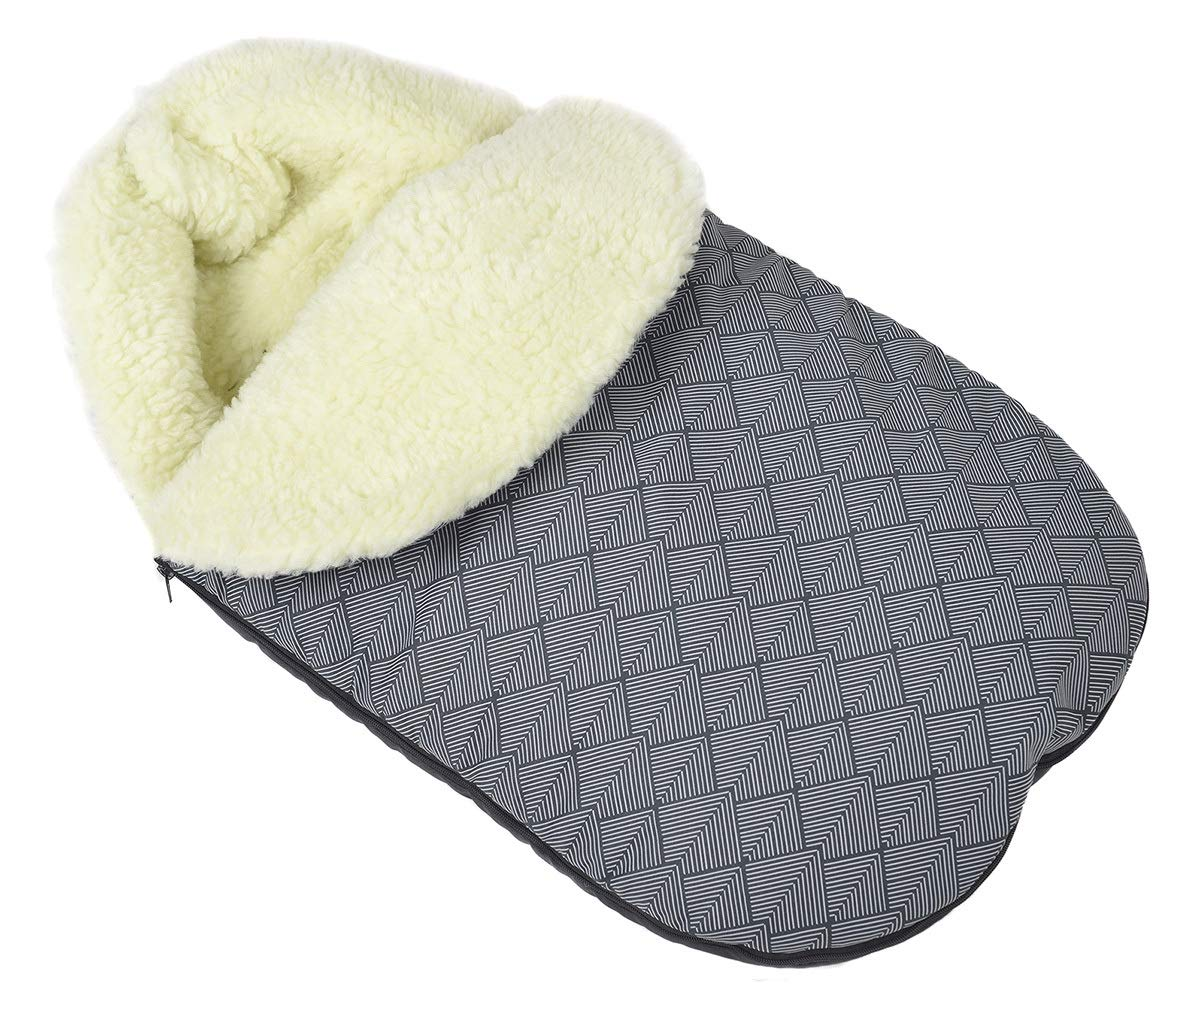 Comfortable Baby Sleeping Bag to Pushchairs Footmuff Cover Wool Black with a Hoodie [071] Ferocity SPI-WOREK-09